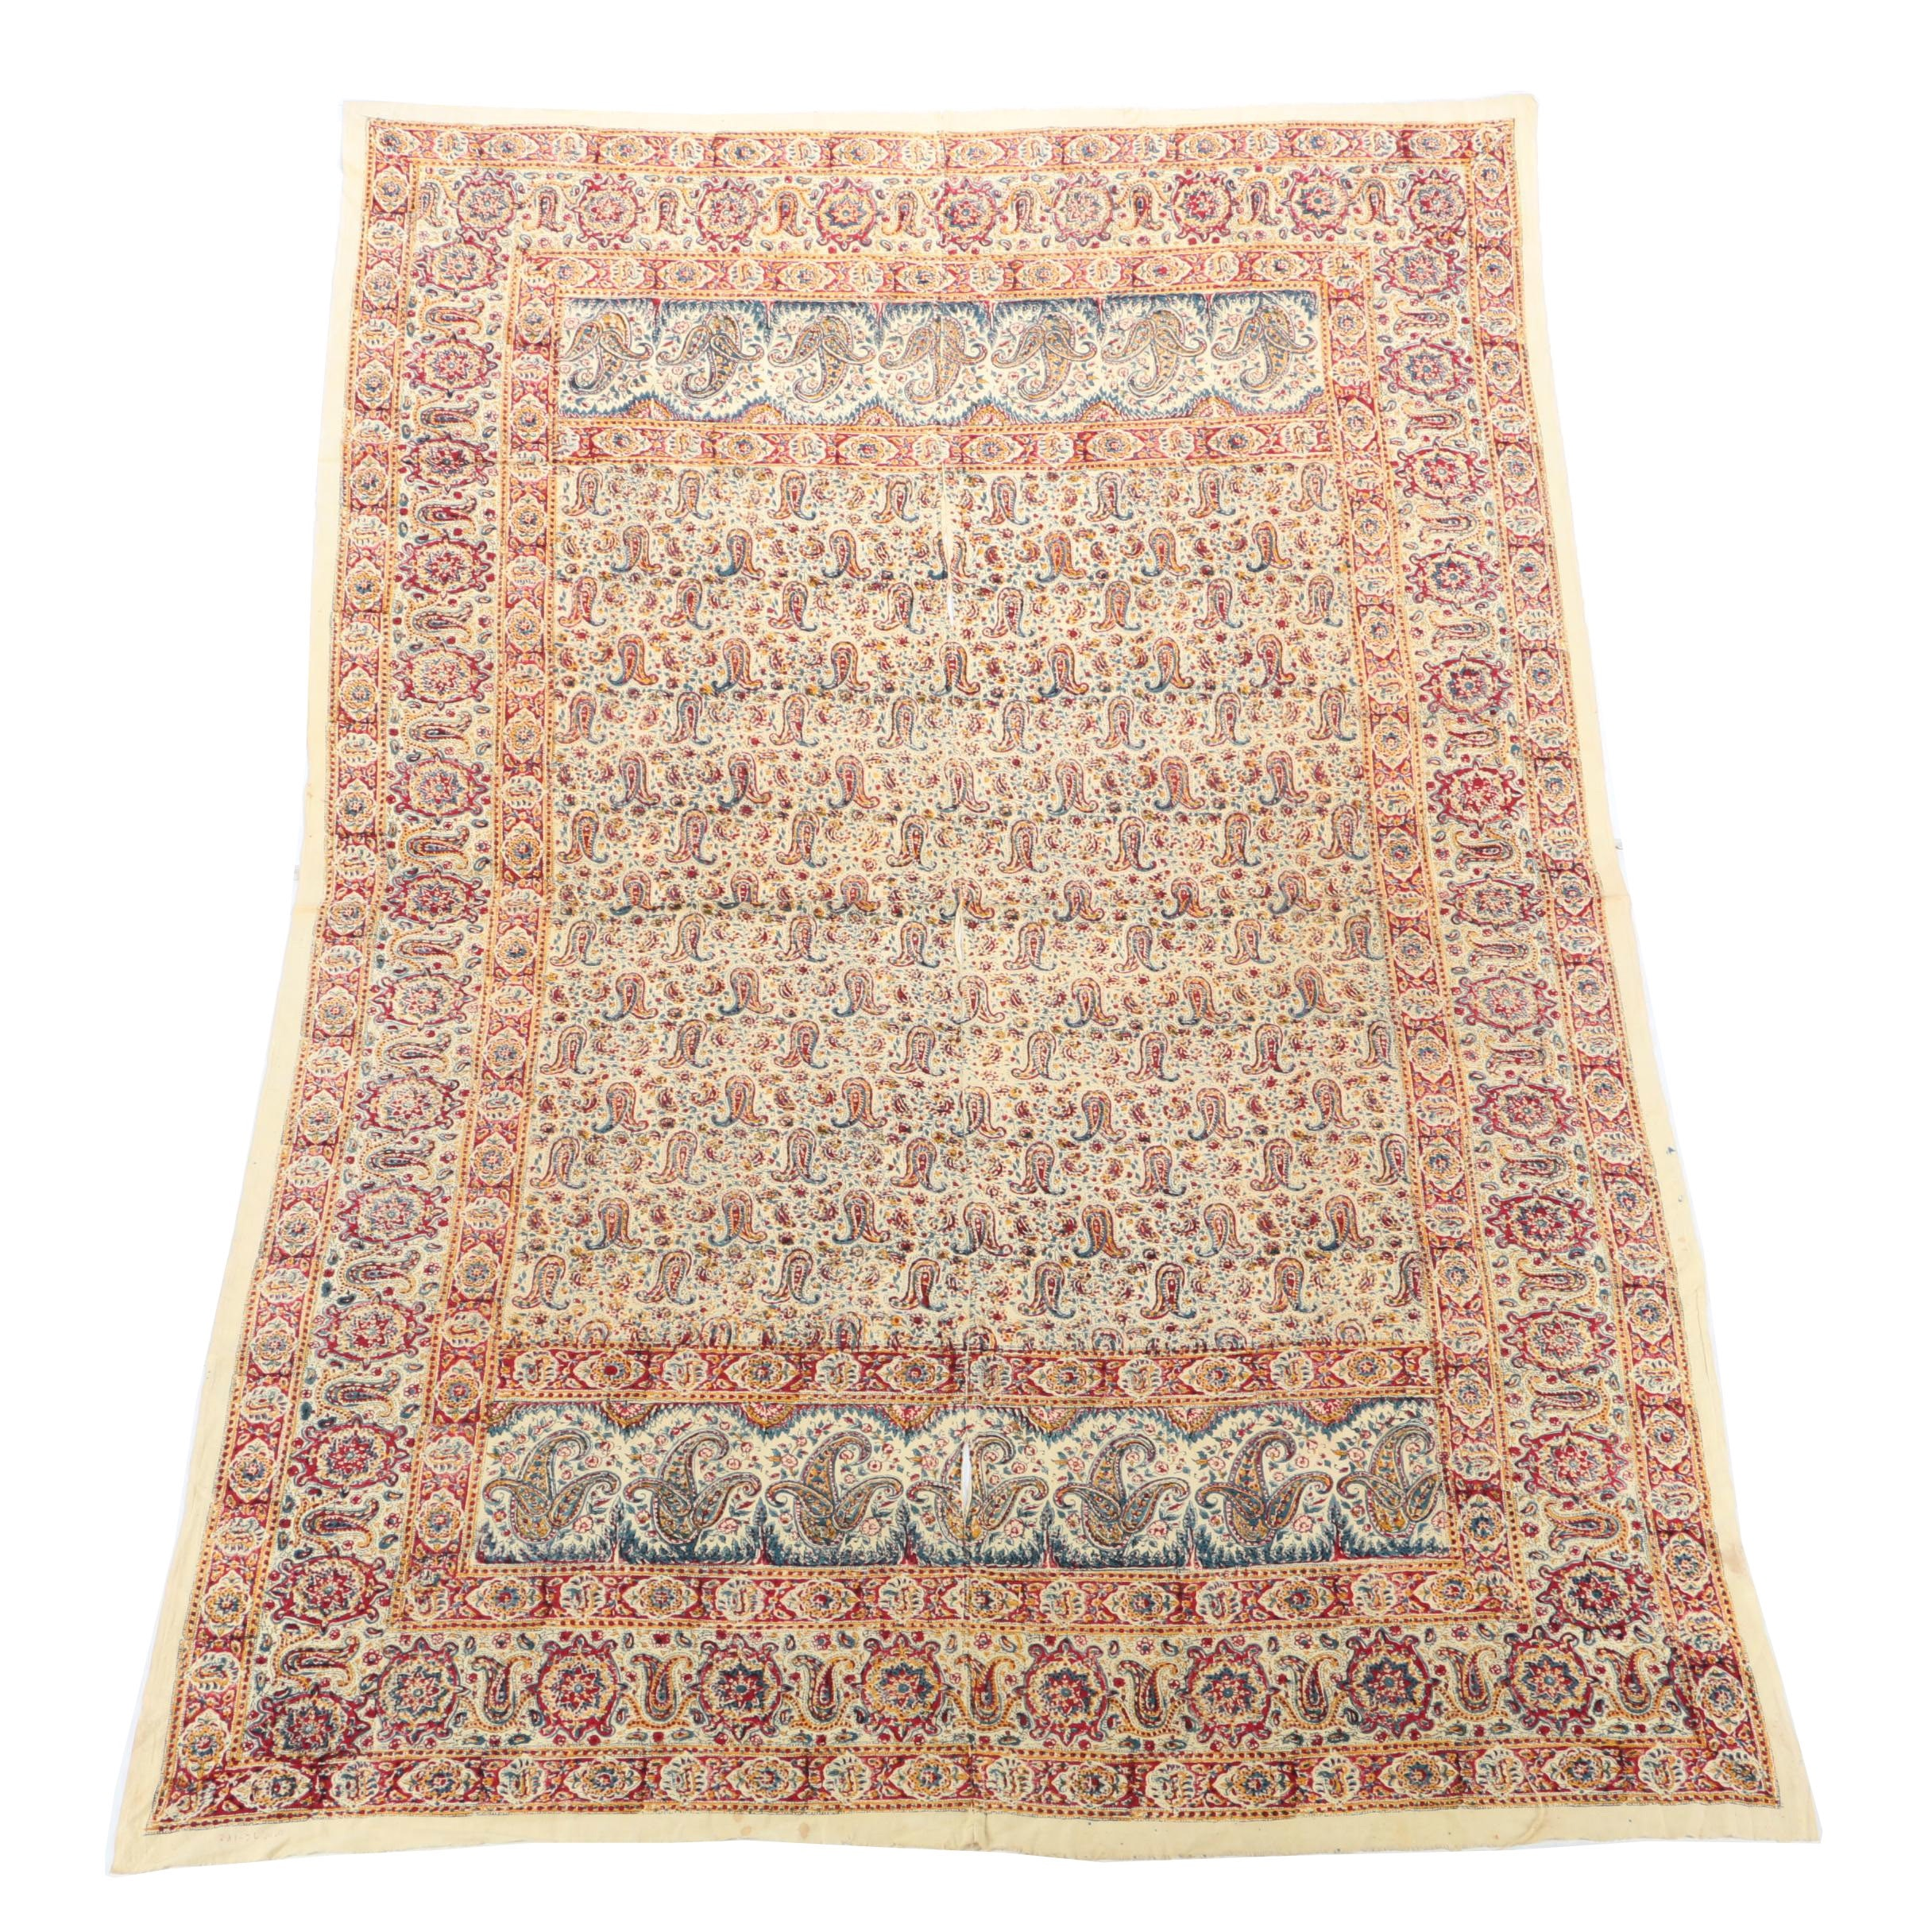 Printed Indian Paisley Tablecloth